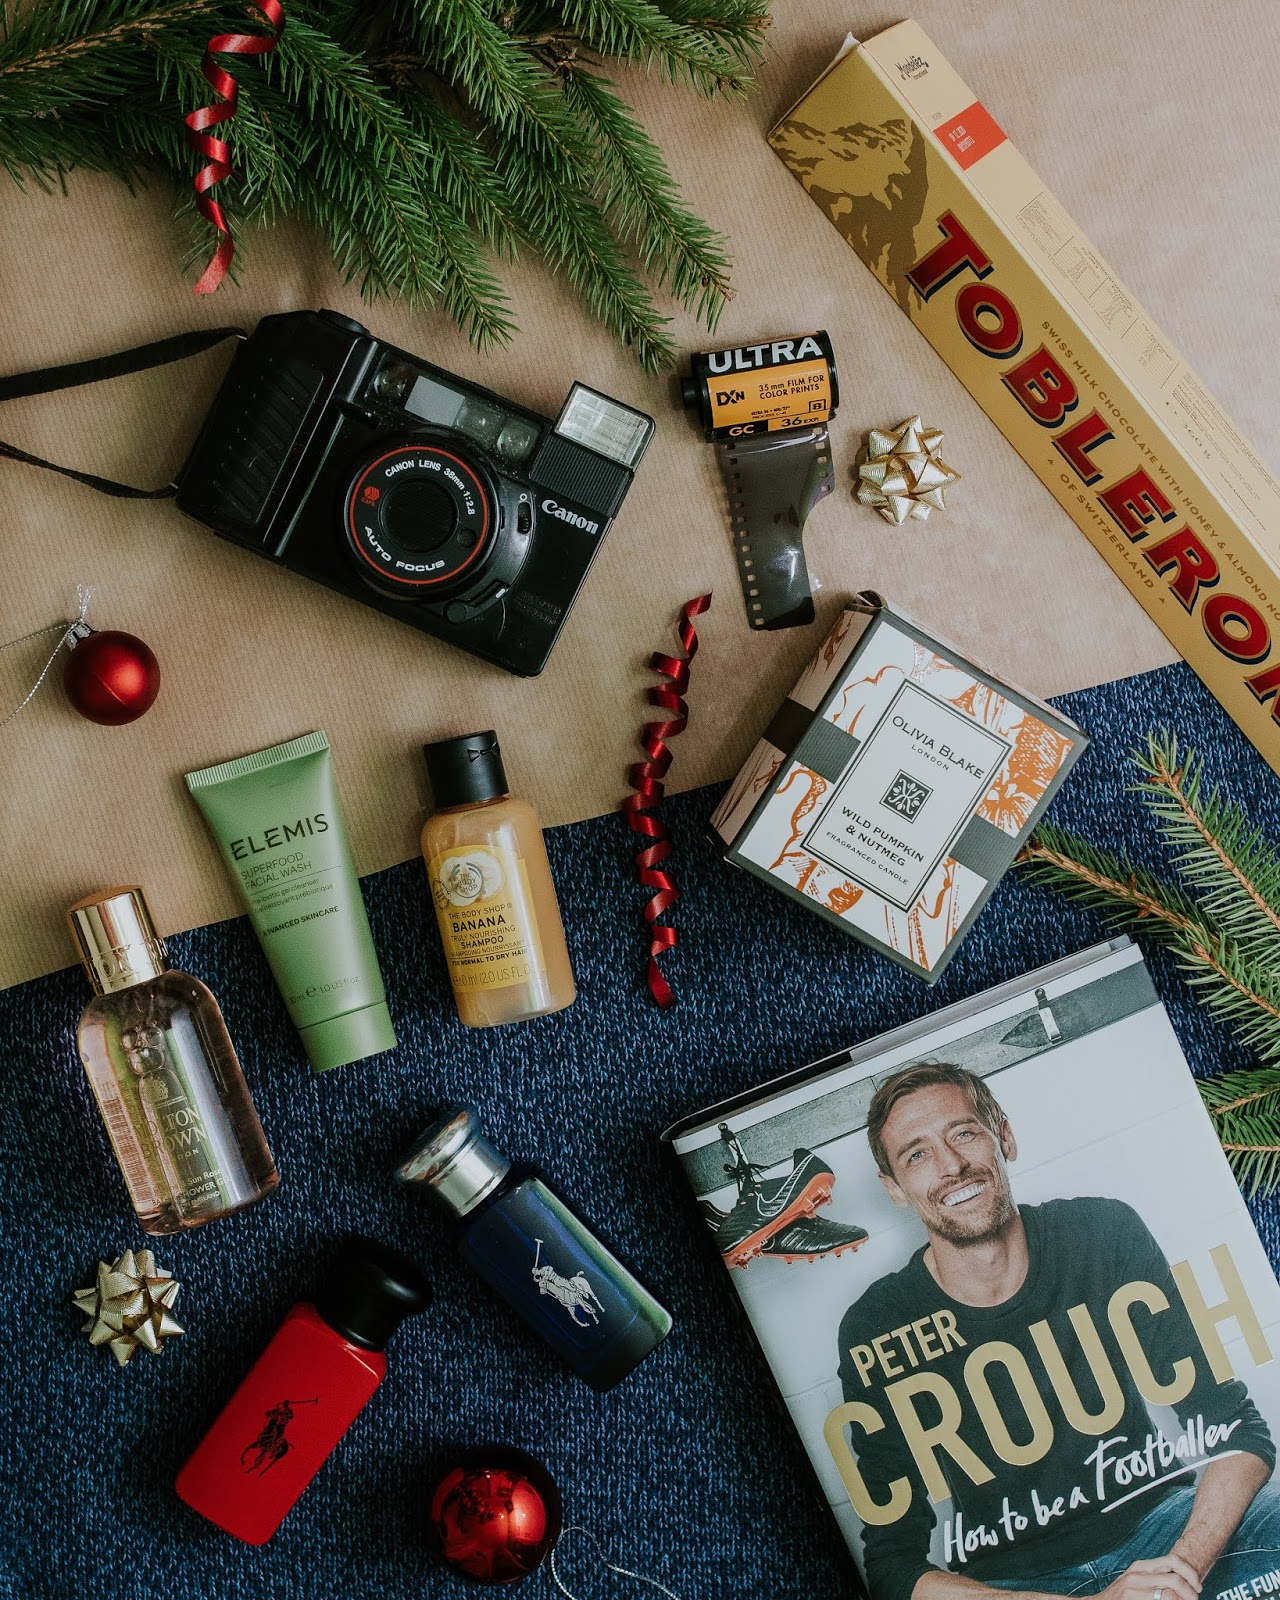 Christmas gift guide for men featuring: ralph lauren red aftershave gift set, a peter crouch book, elemis skincare, the body shop mini shampoo, 35mm film camera, tkmaxx candle